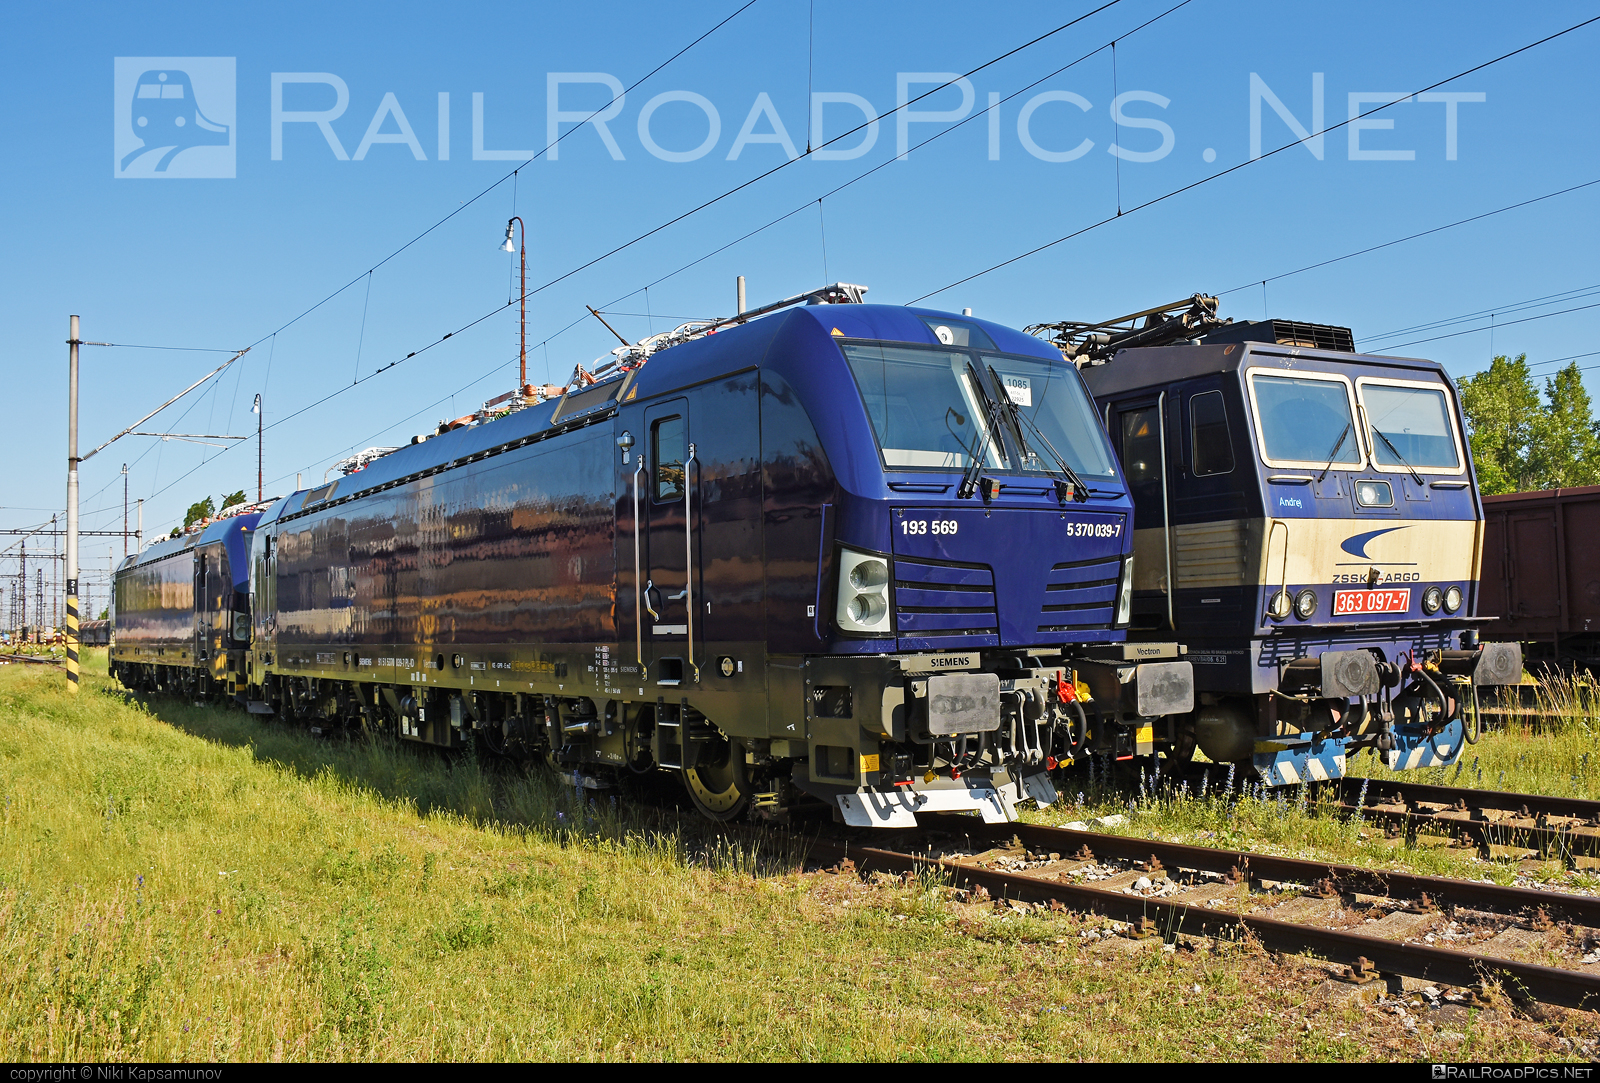 Siemens Vectron MS - 5 370 039-7 operated by Industrial Division sp. z o. o. #IndustrialDivision #siemens #siemensvectron #siemensvectronms #vectron #vectronms